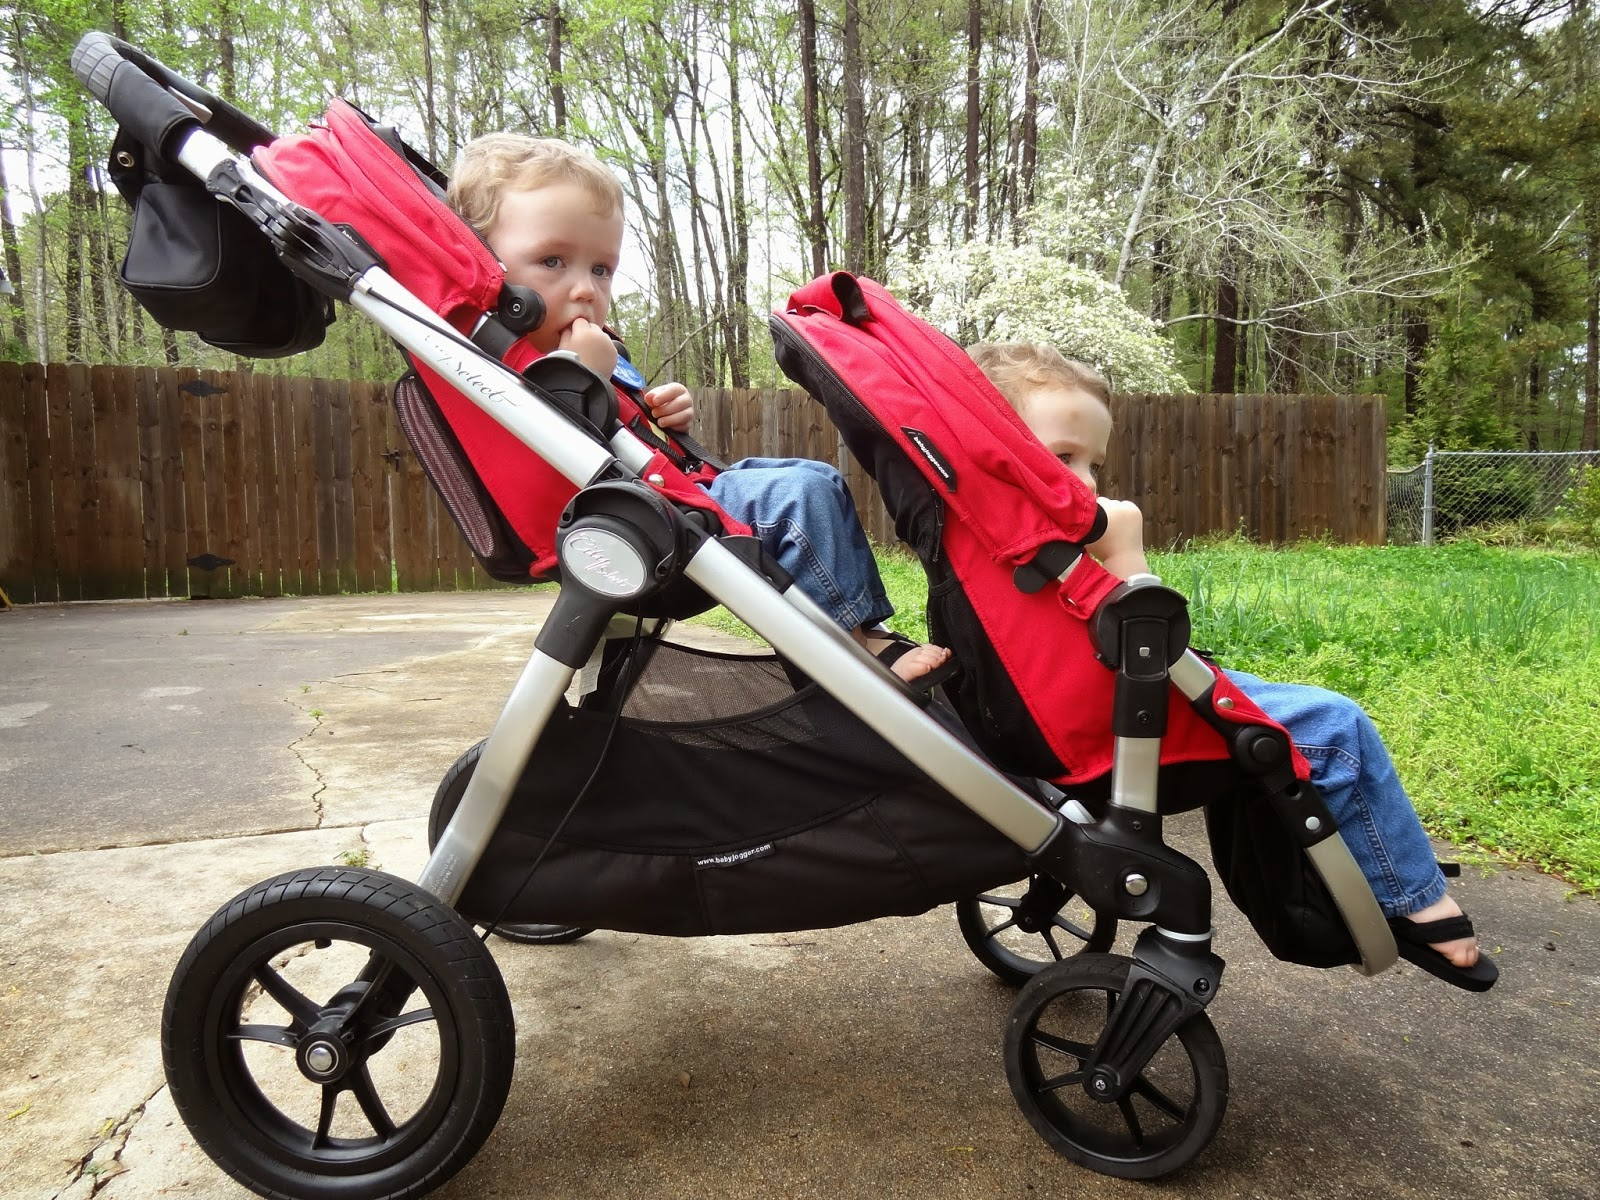 Twin Stroller For 4 Year Old